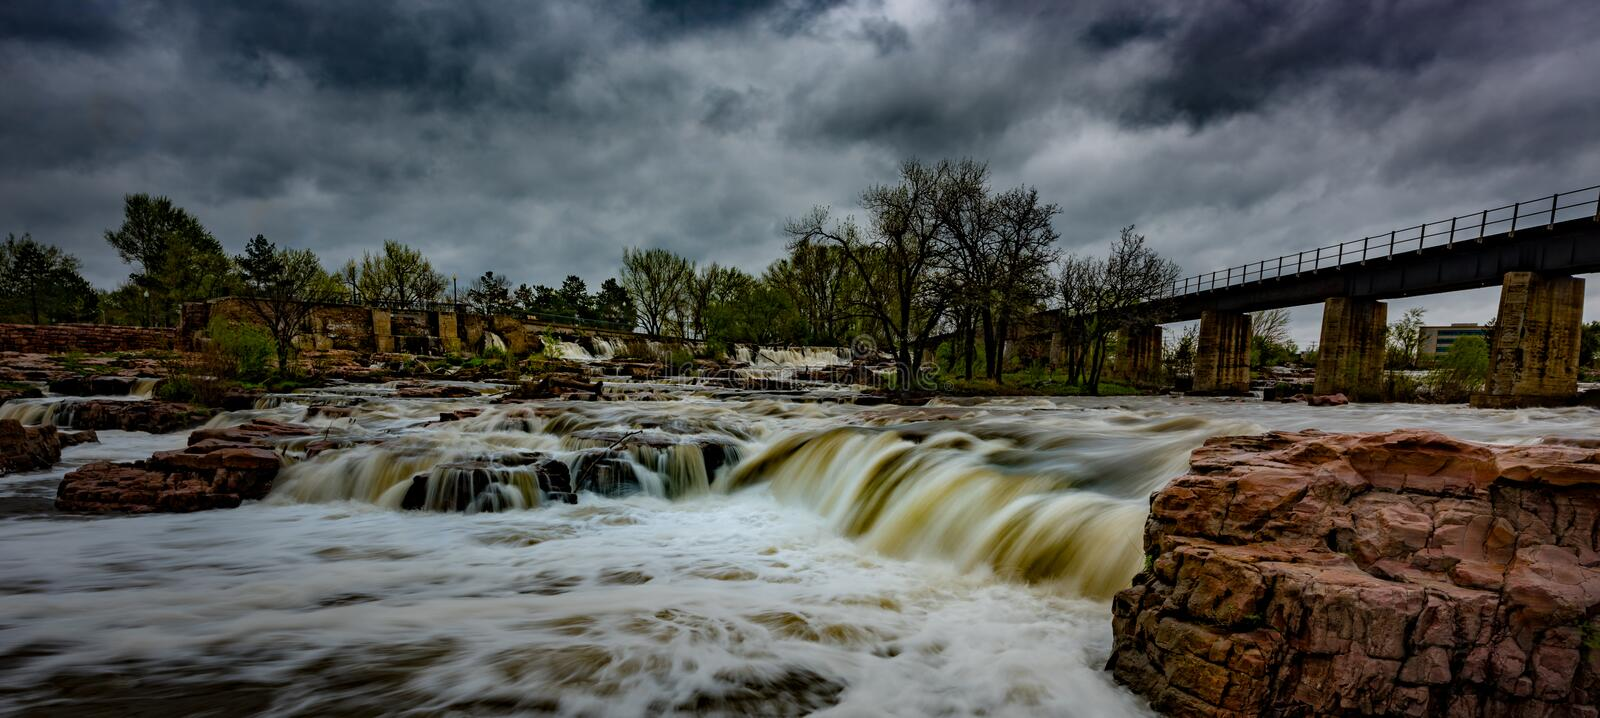 Sioux Falls South Dakota United énonce des paysages photos stock